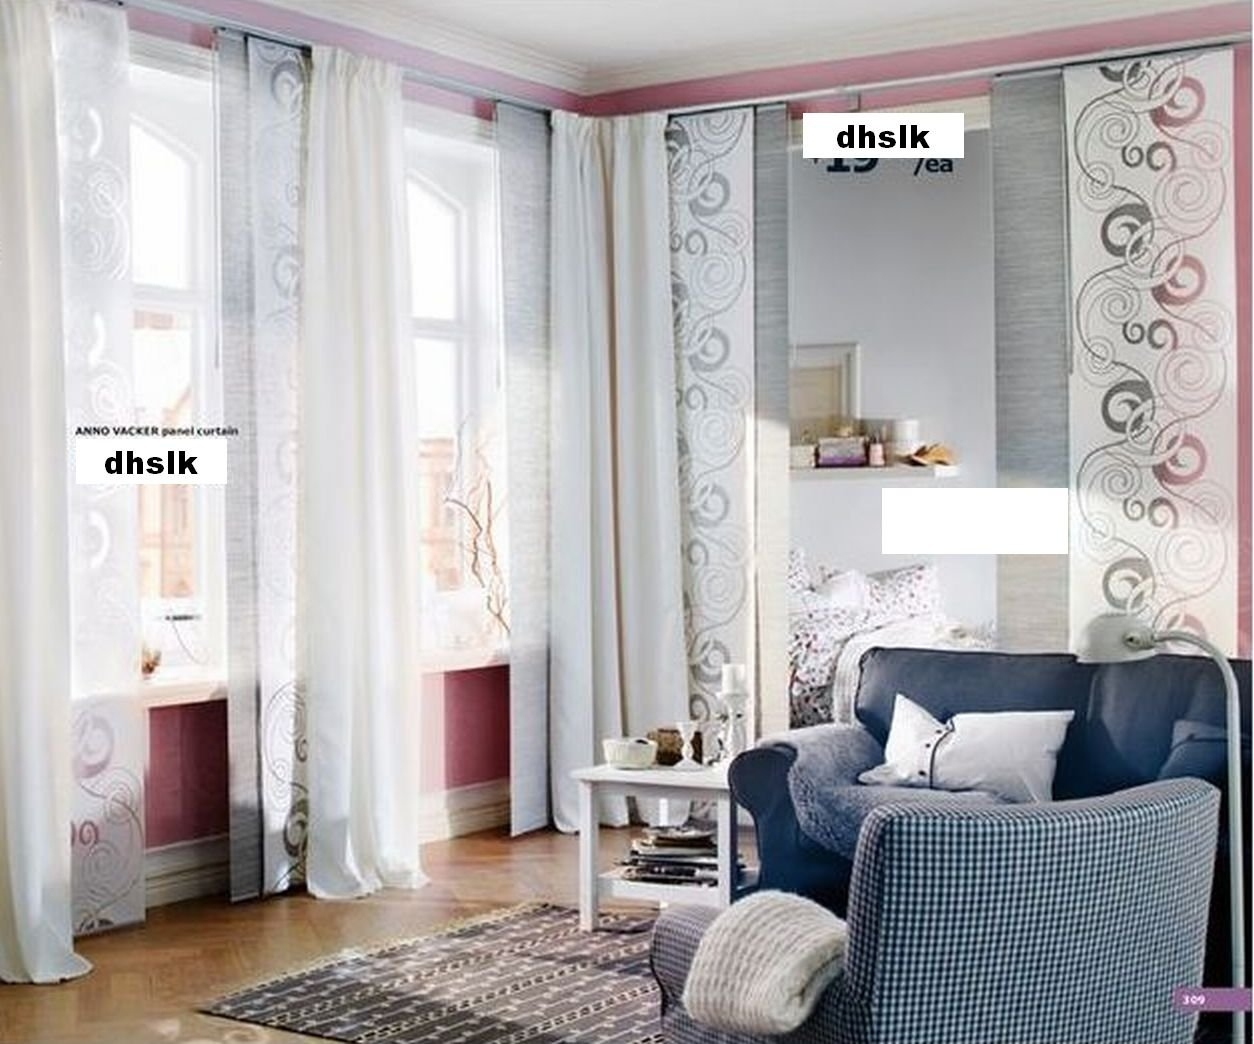 Ikea Curtains Room Divider Decorate The House With Beautiful In Room Curtain Divider IKEA (Image 15 of 25)